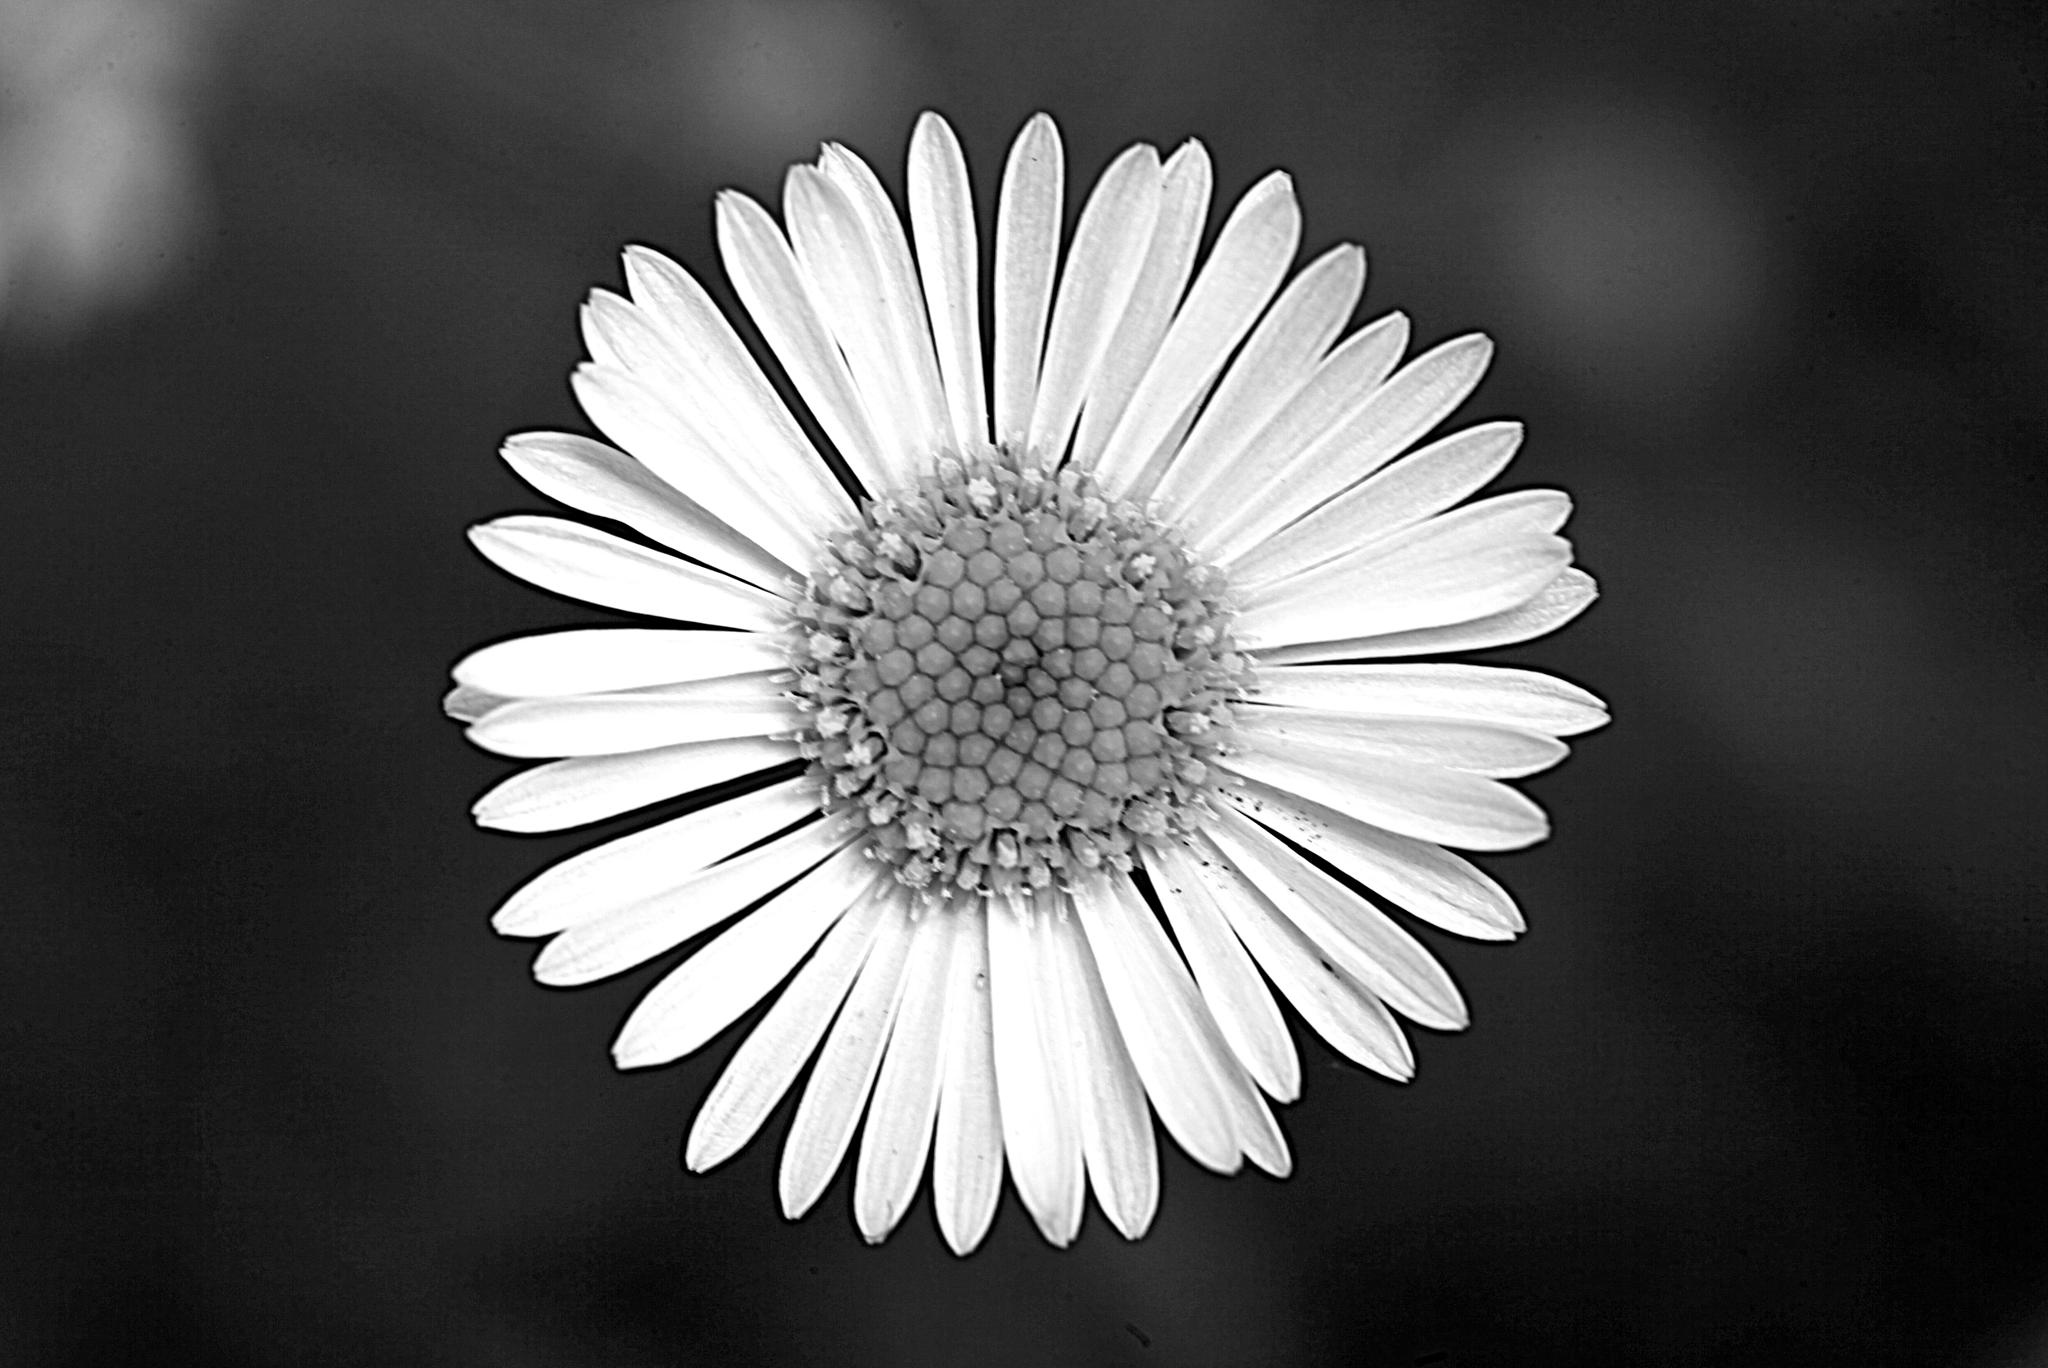 Simple Daisy in BW by Christo Smith